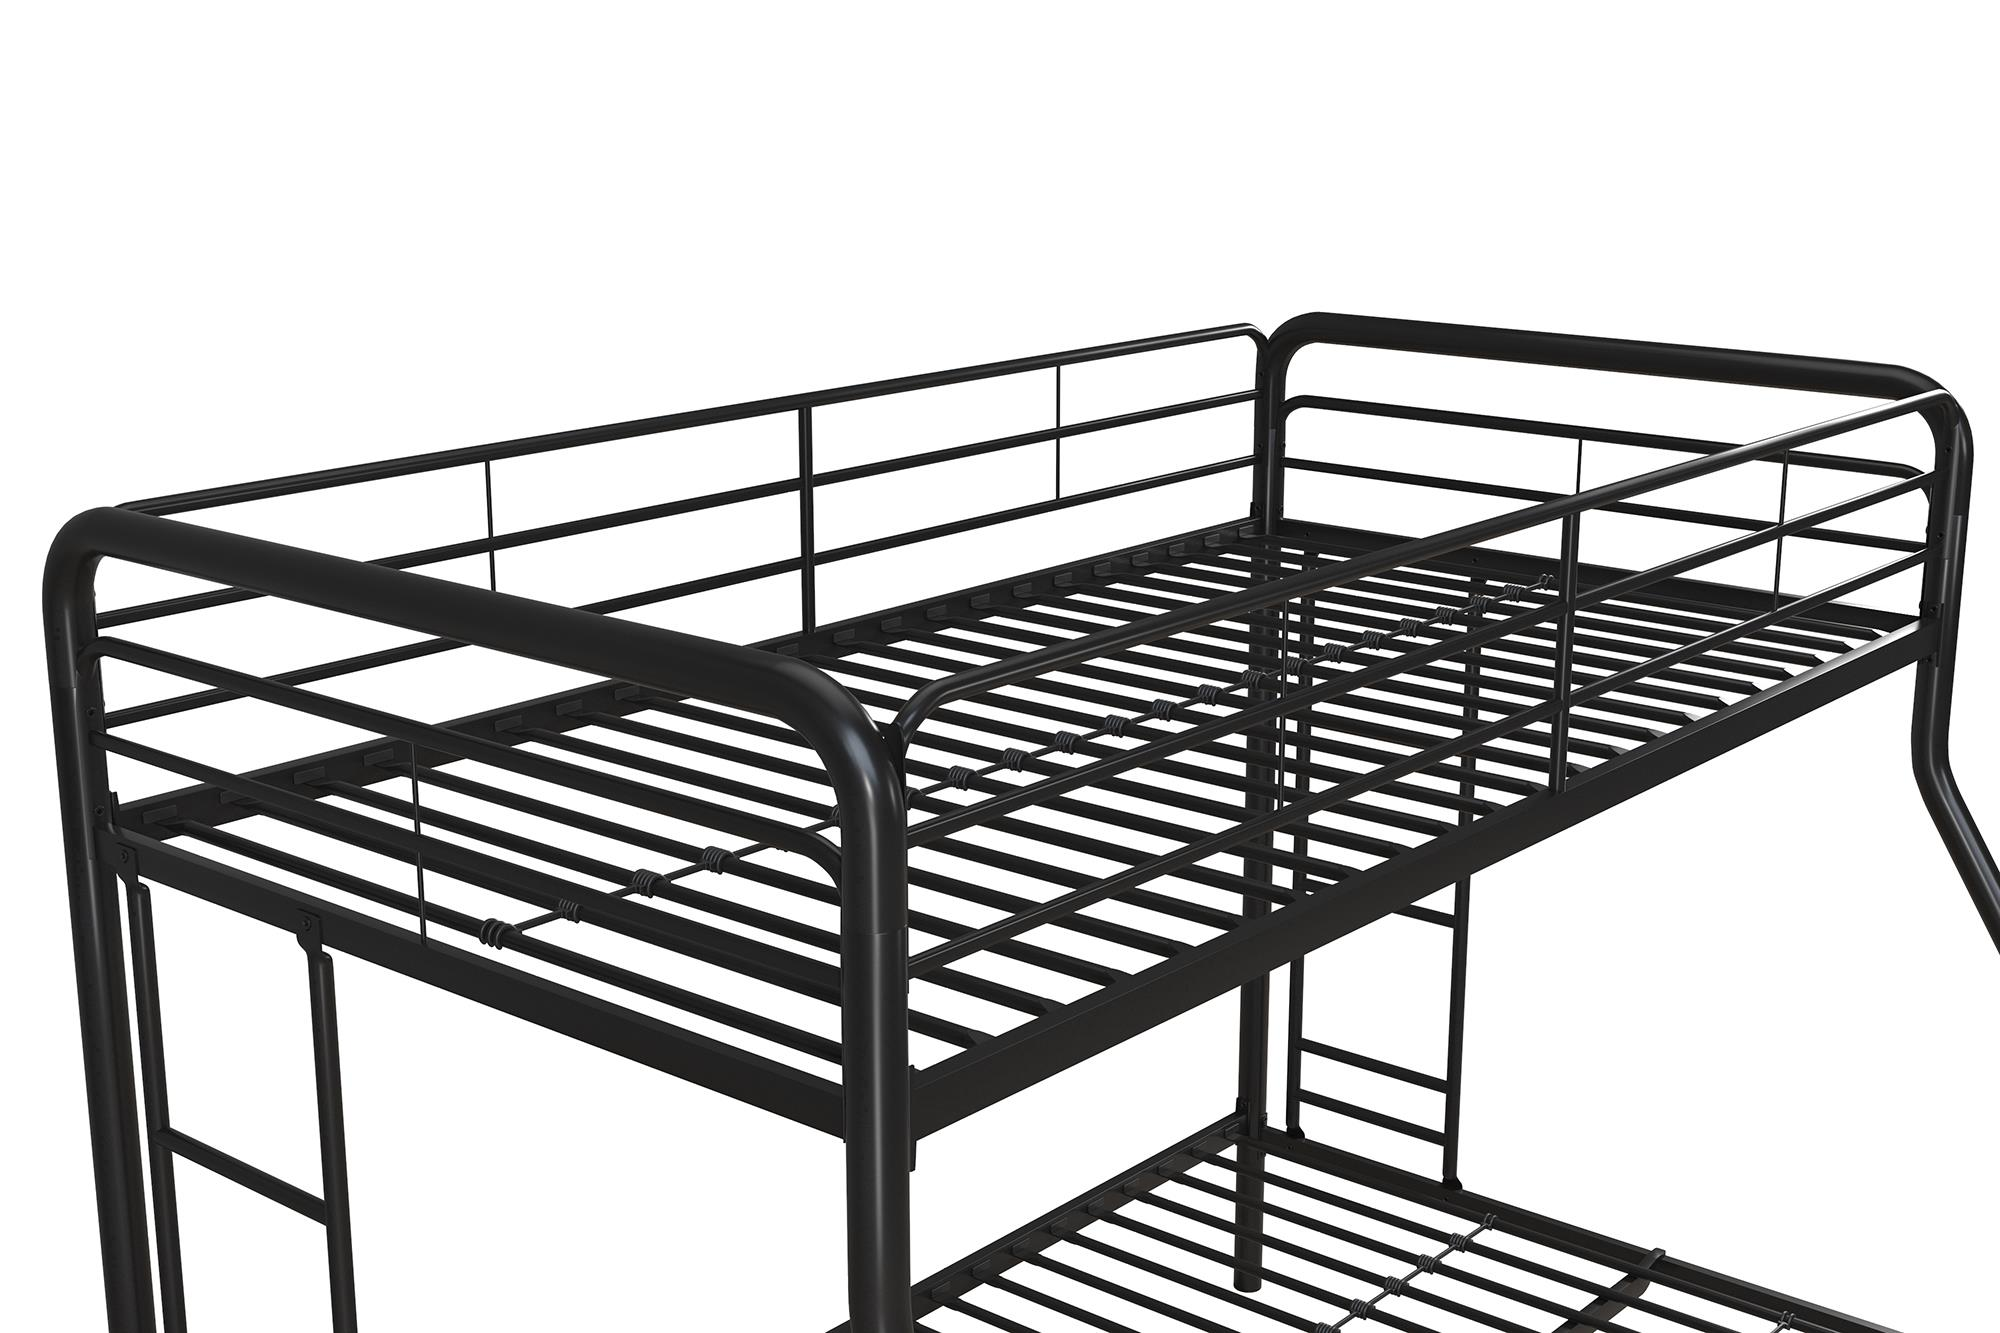 dorel twin over full metal bunk bed multiple colors image 5 of 15